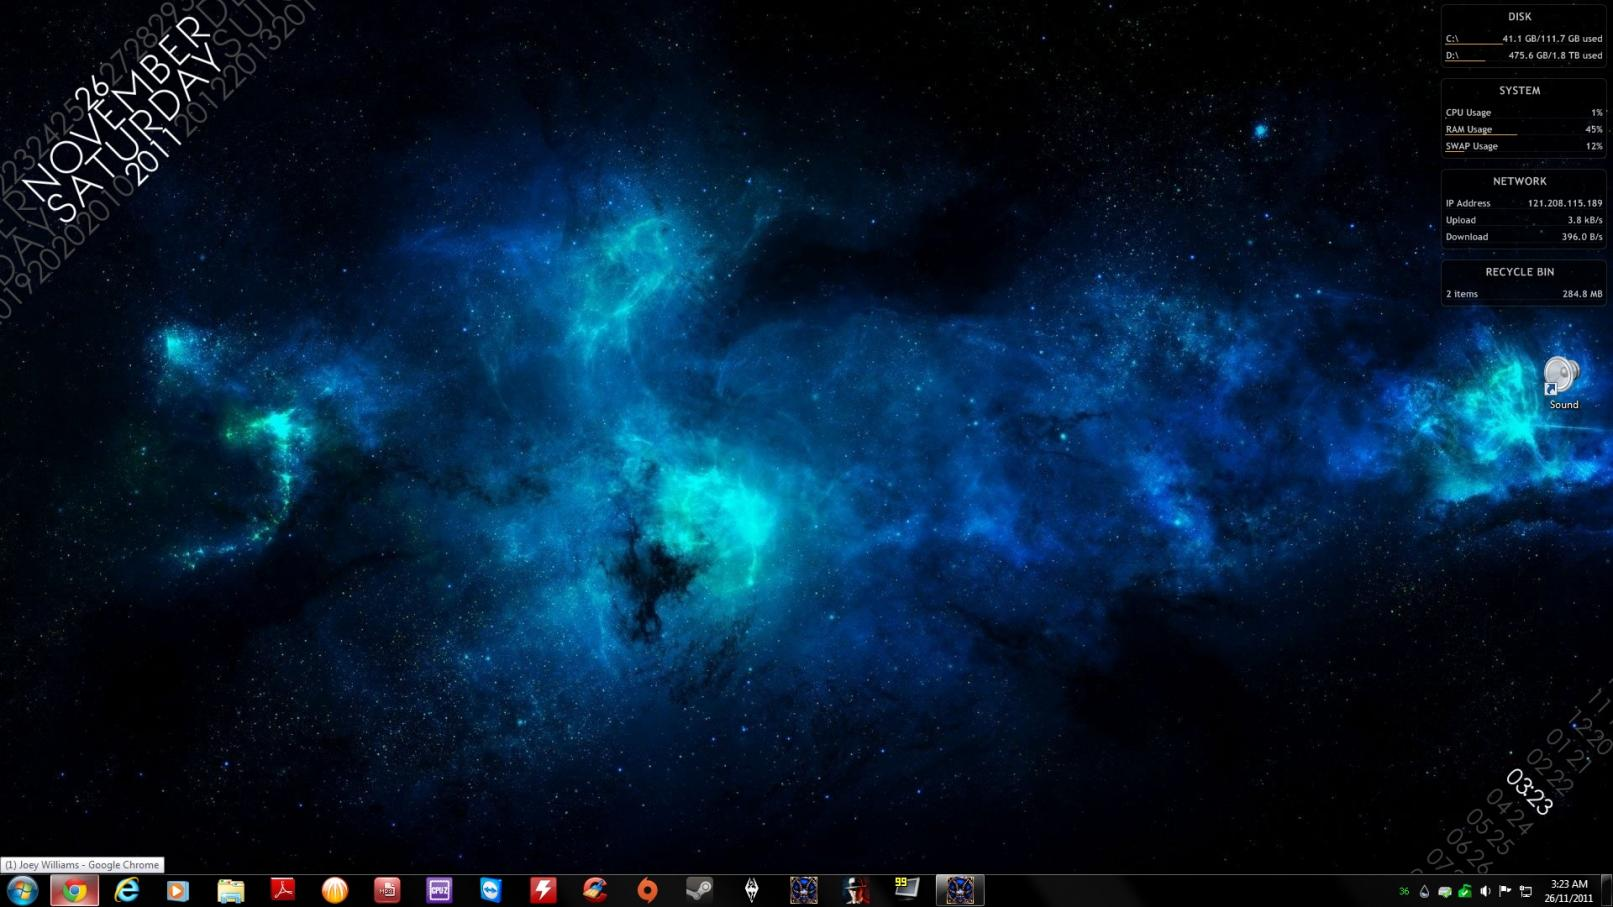 My Desktop xD /w Rainmeter :D